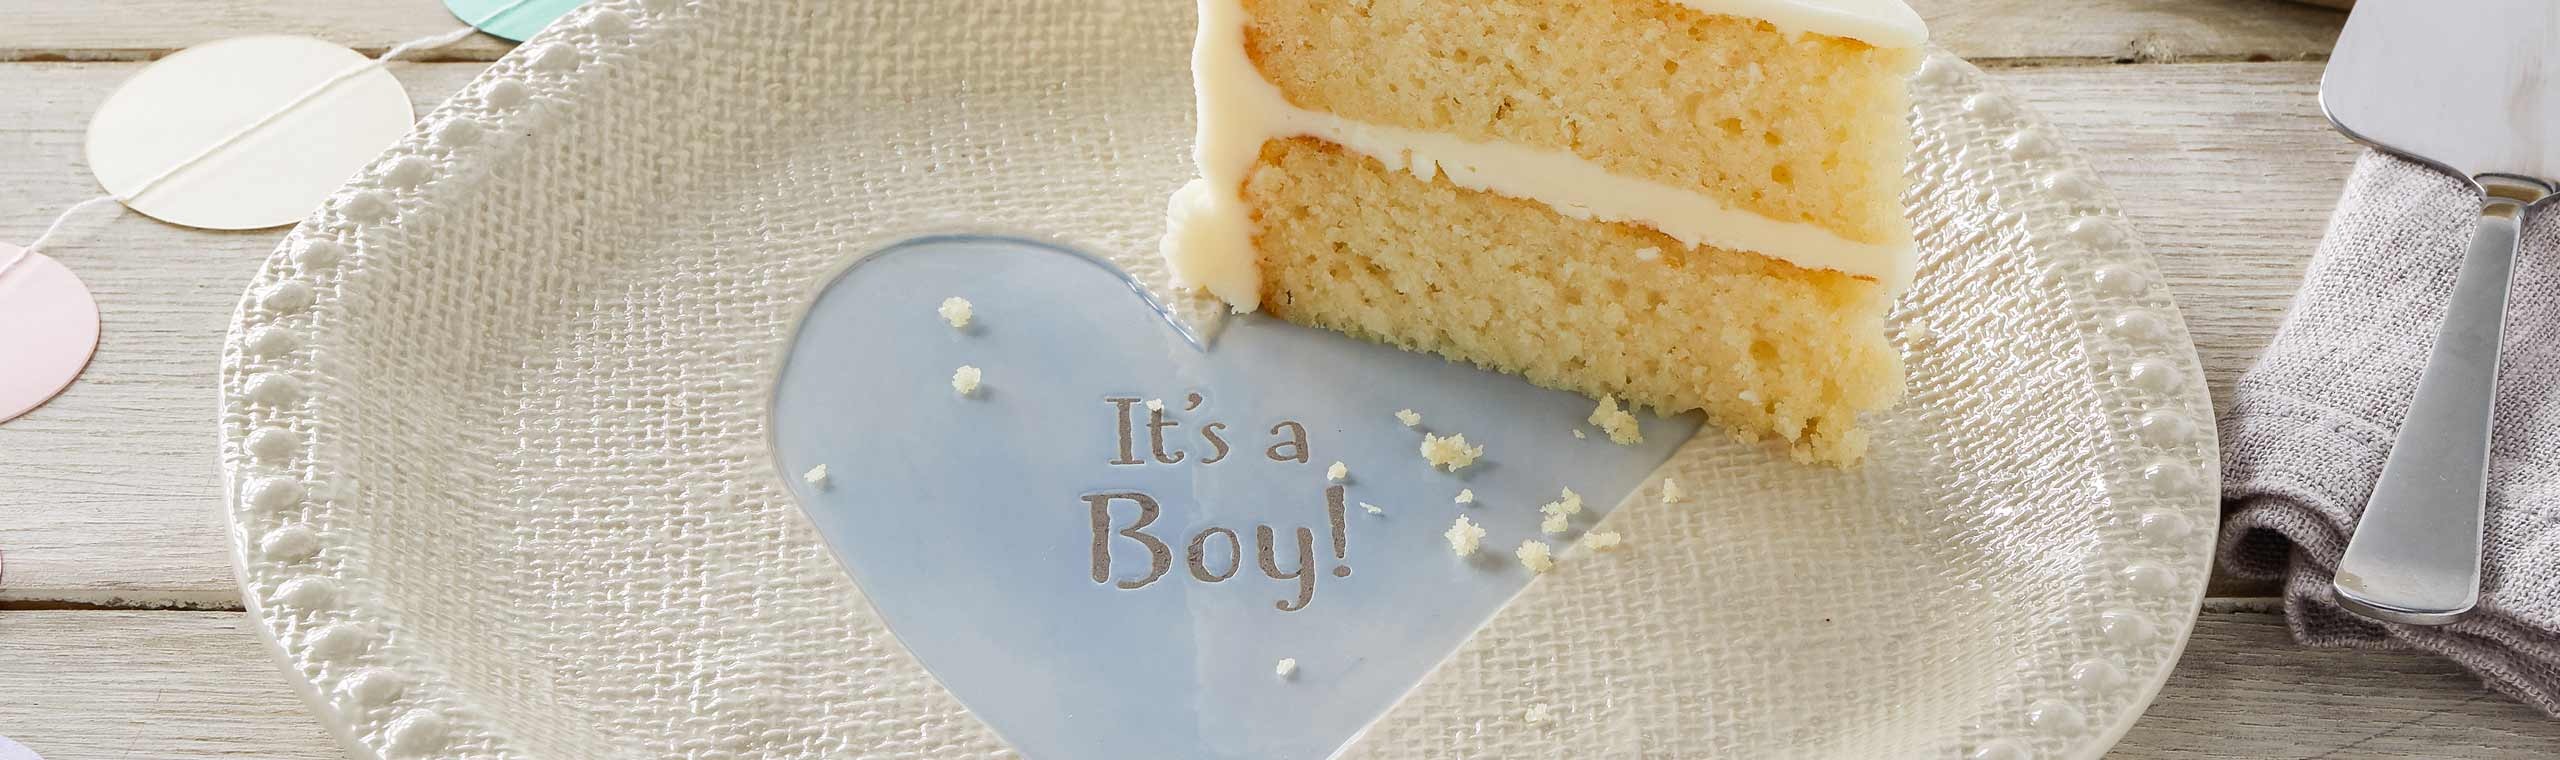 Piece of cake on textured ceramic plate decorated with blue heart with the words It's a boy